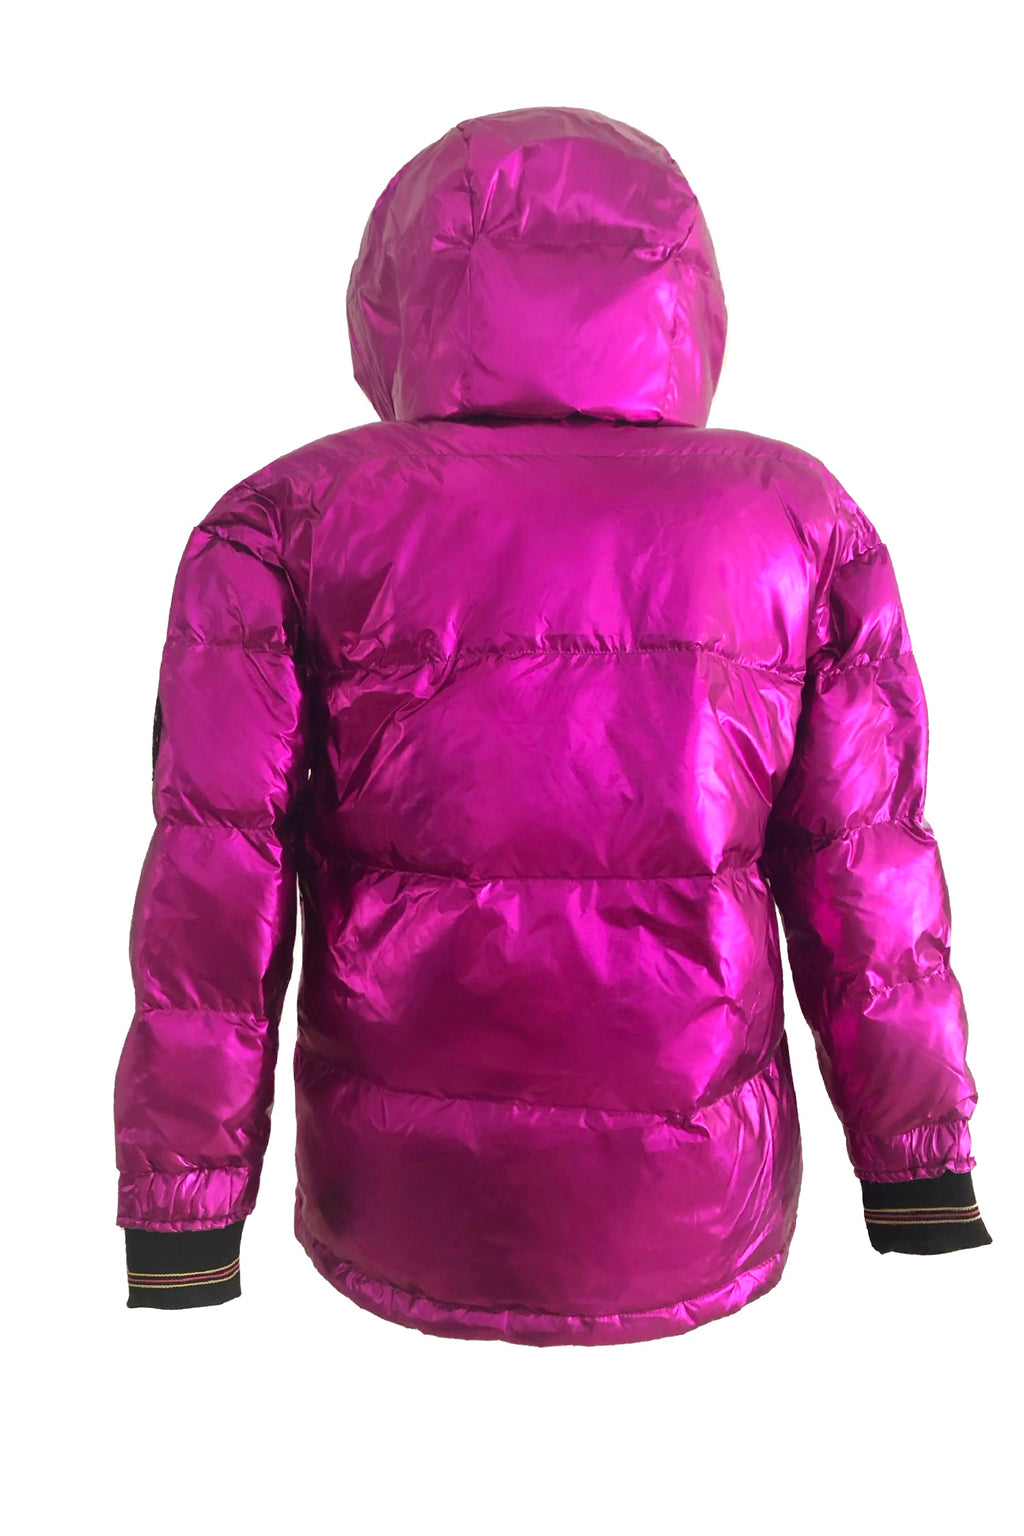 Metallic Fuchsia Puffer Jacket